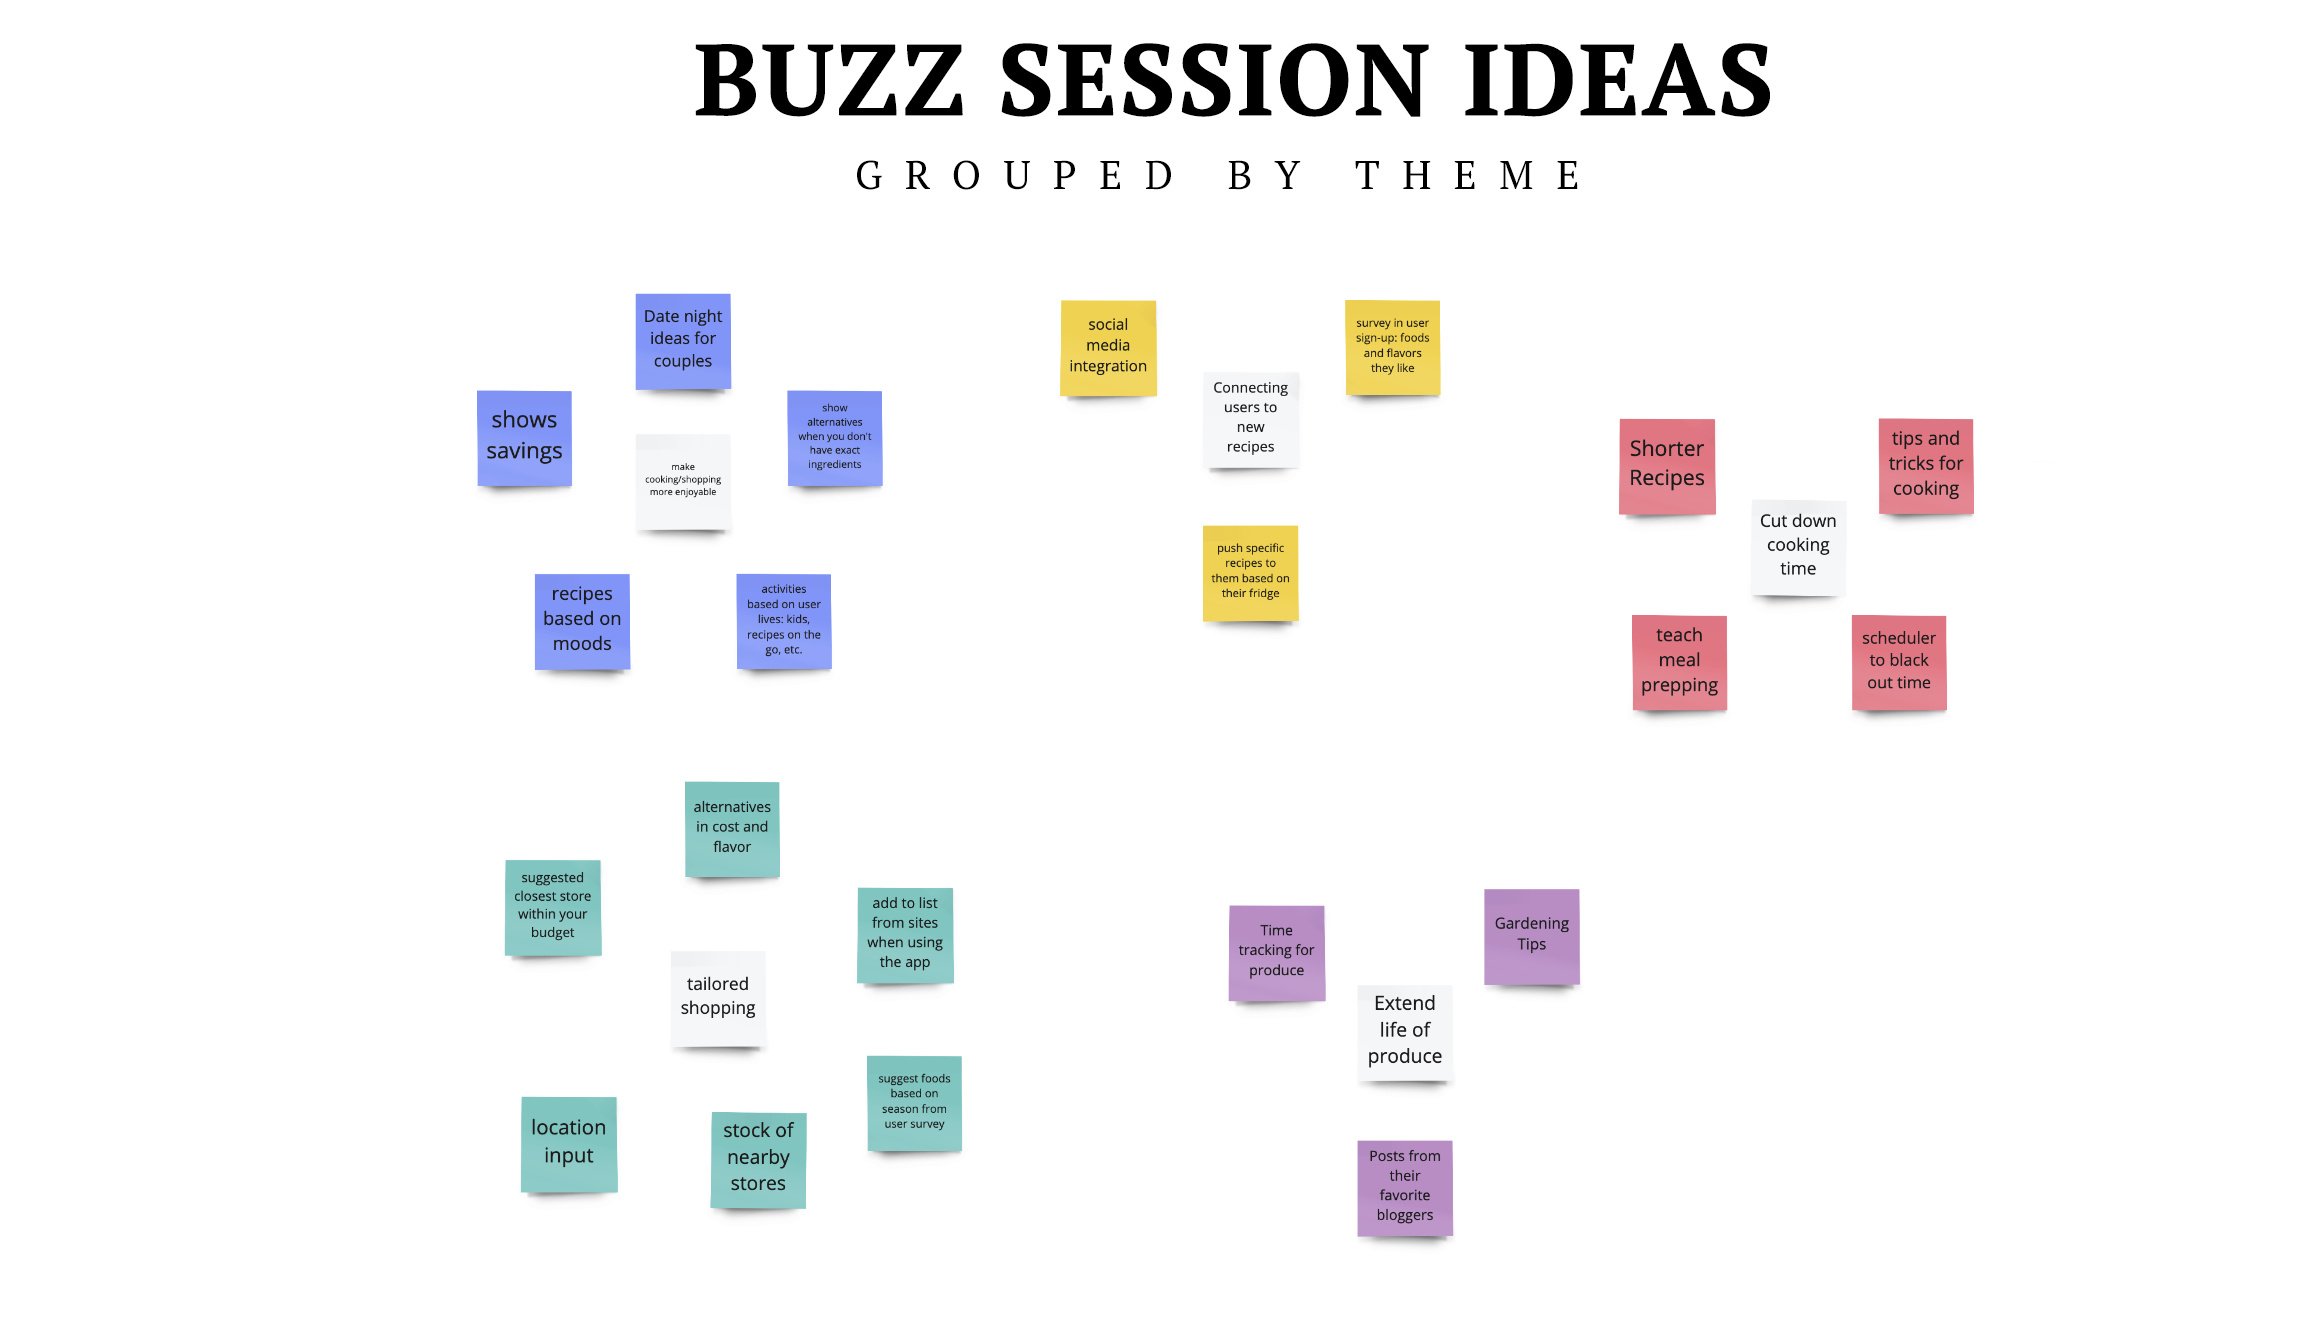 The objective of the Buzz Session is to allot a short timeframe for brainstorming solutions & ideas that relate to our HMWs from earlier research.The timeframe for this segment was 5 minutes, which allowed for quick-thinking rather than over analyzing of the ideas.Afterward, these ideas were sorted and grouped into overarching themes where I saw similarities and patterns that connected the different categories.